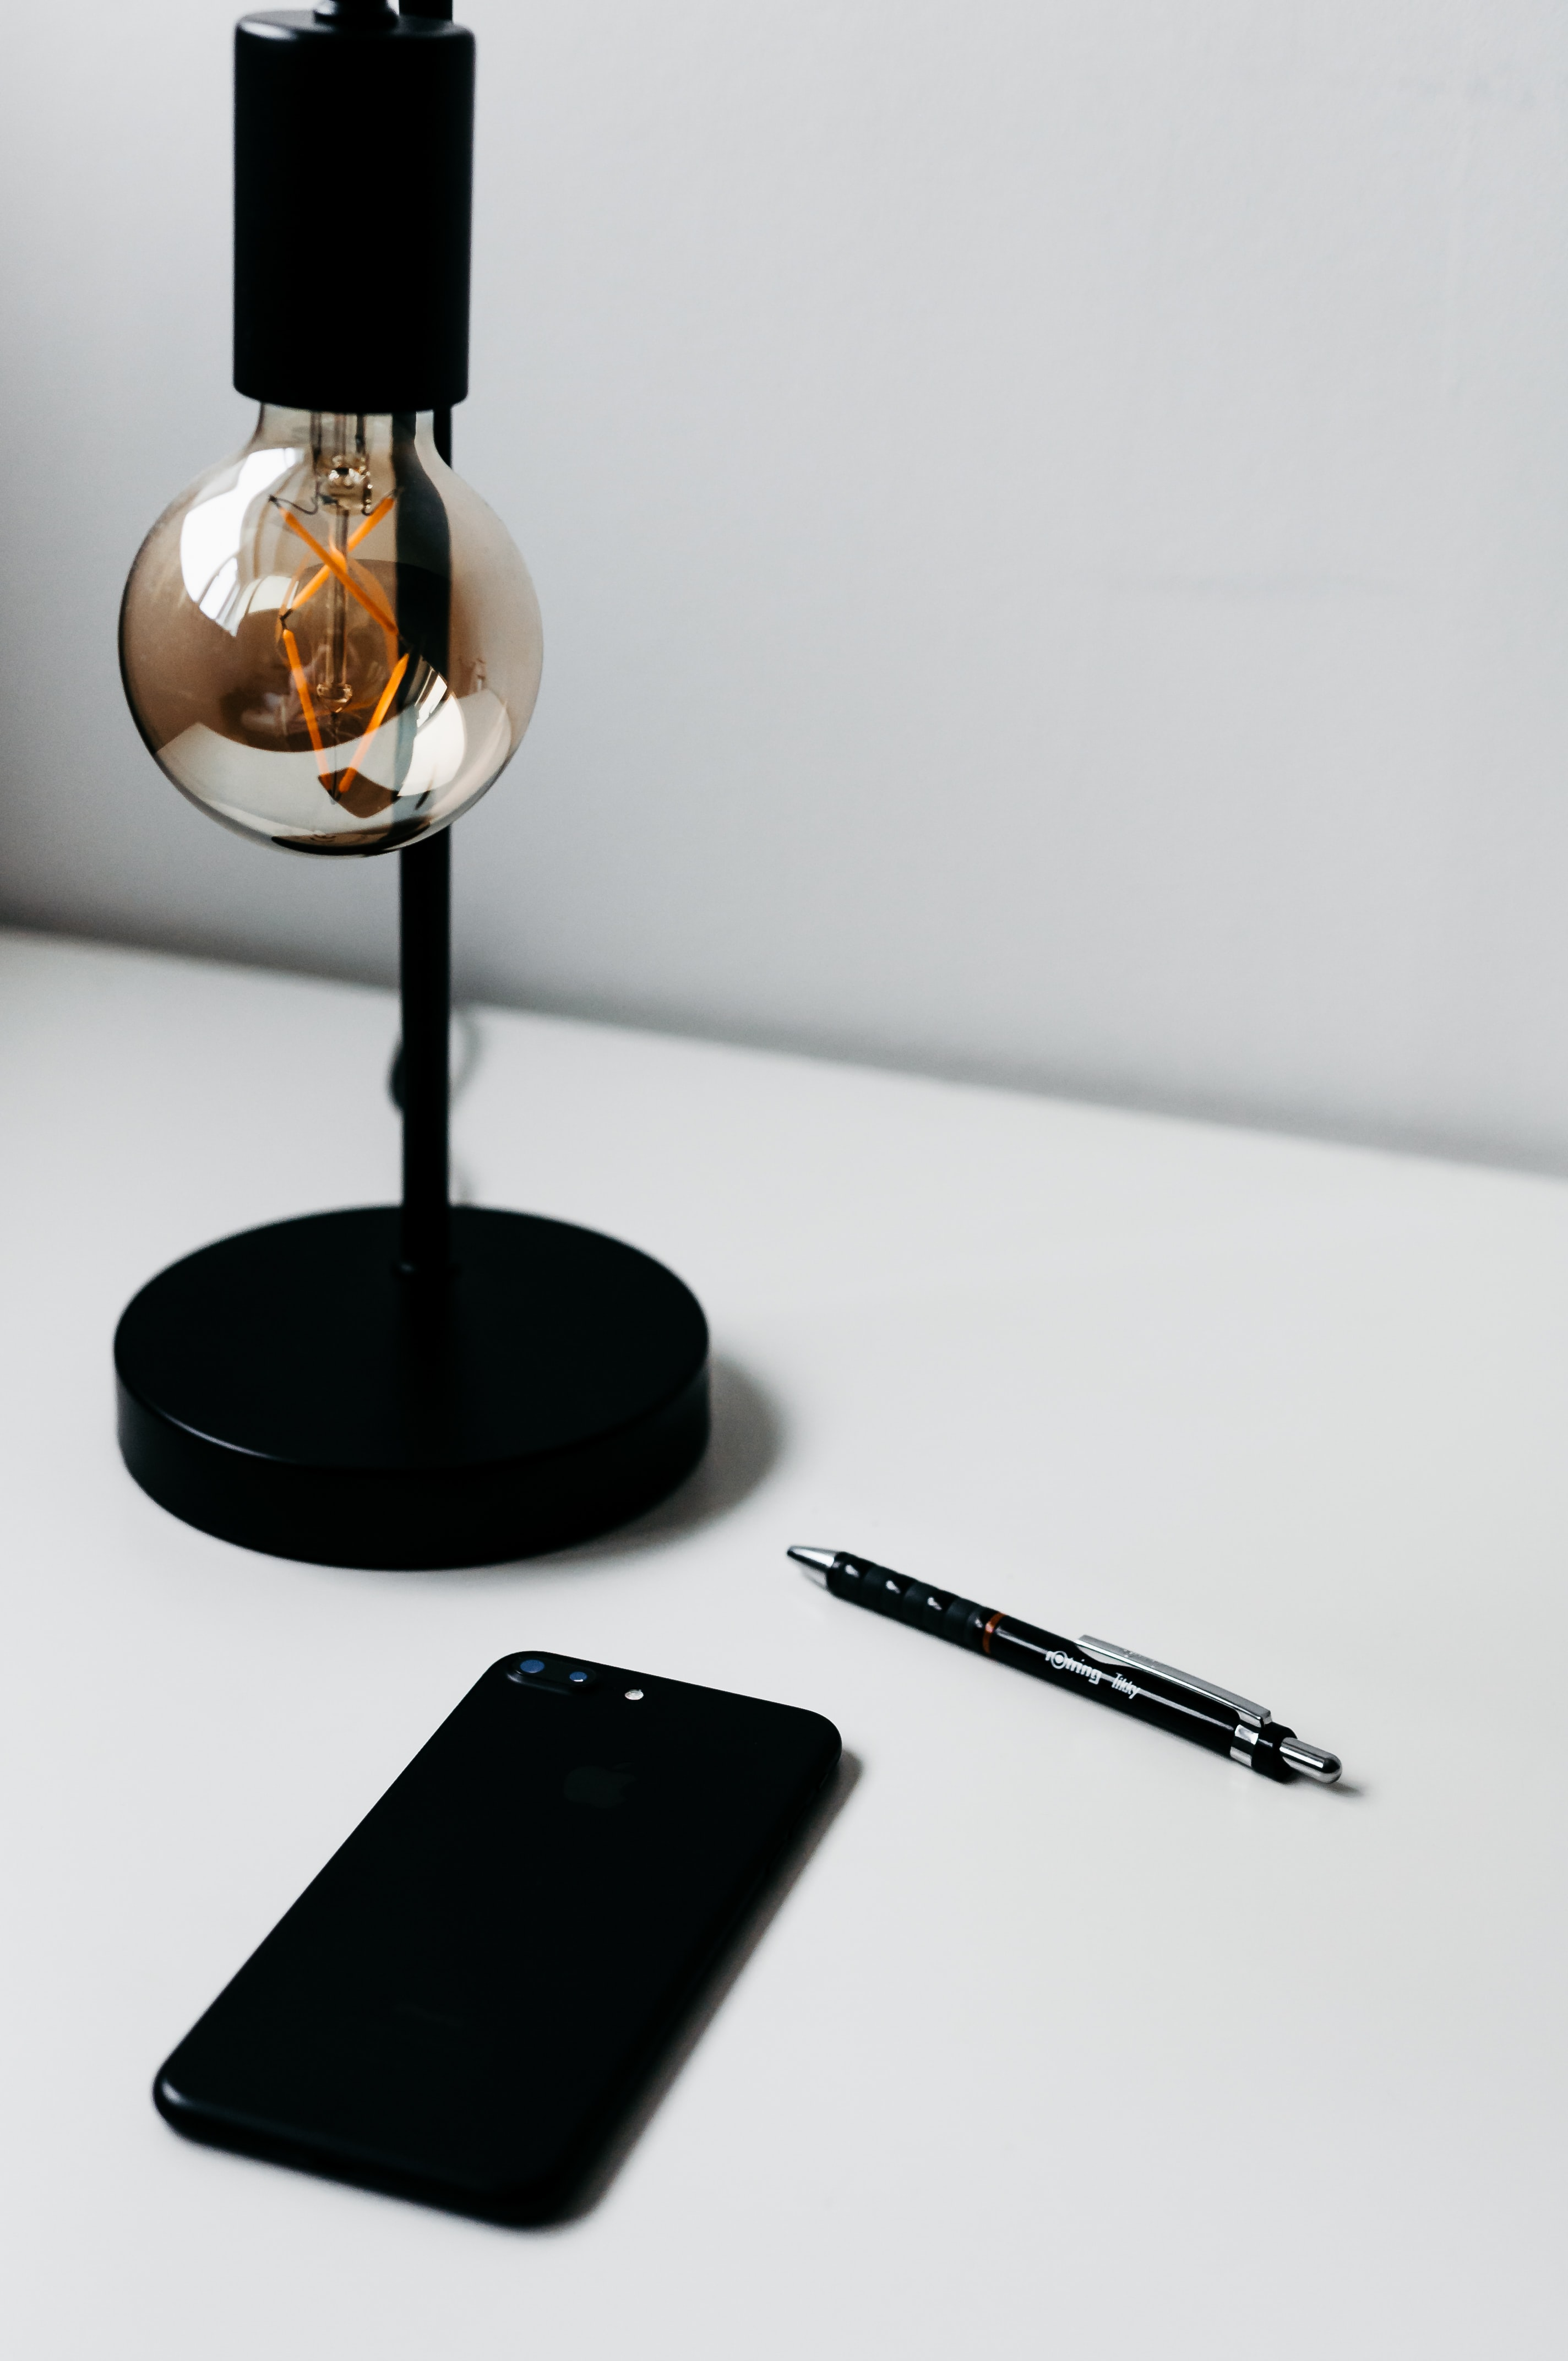 smartphone beside click pen and lamp